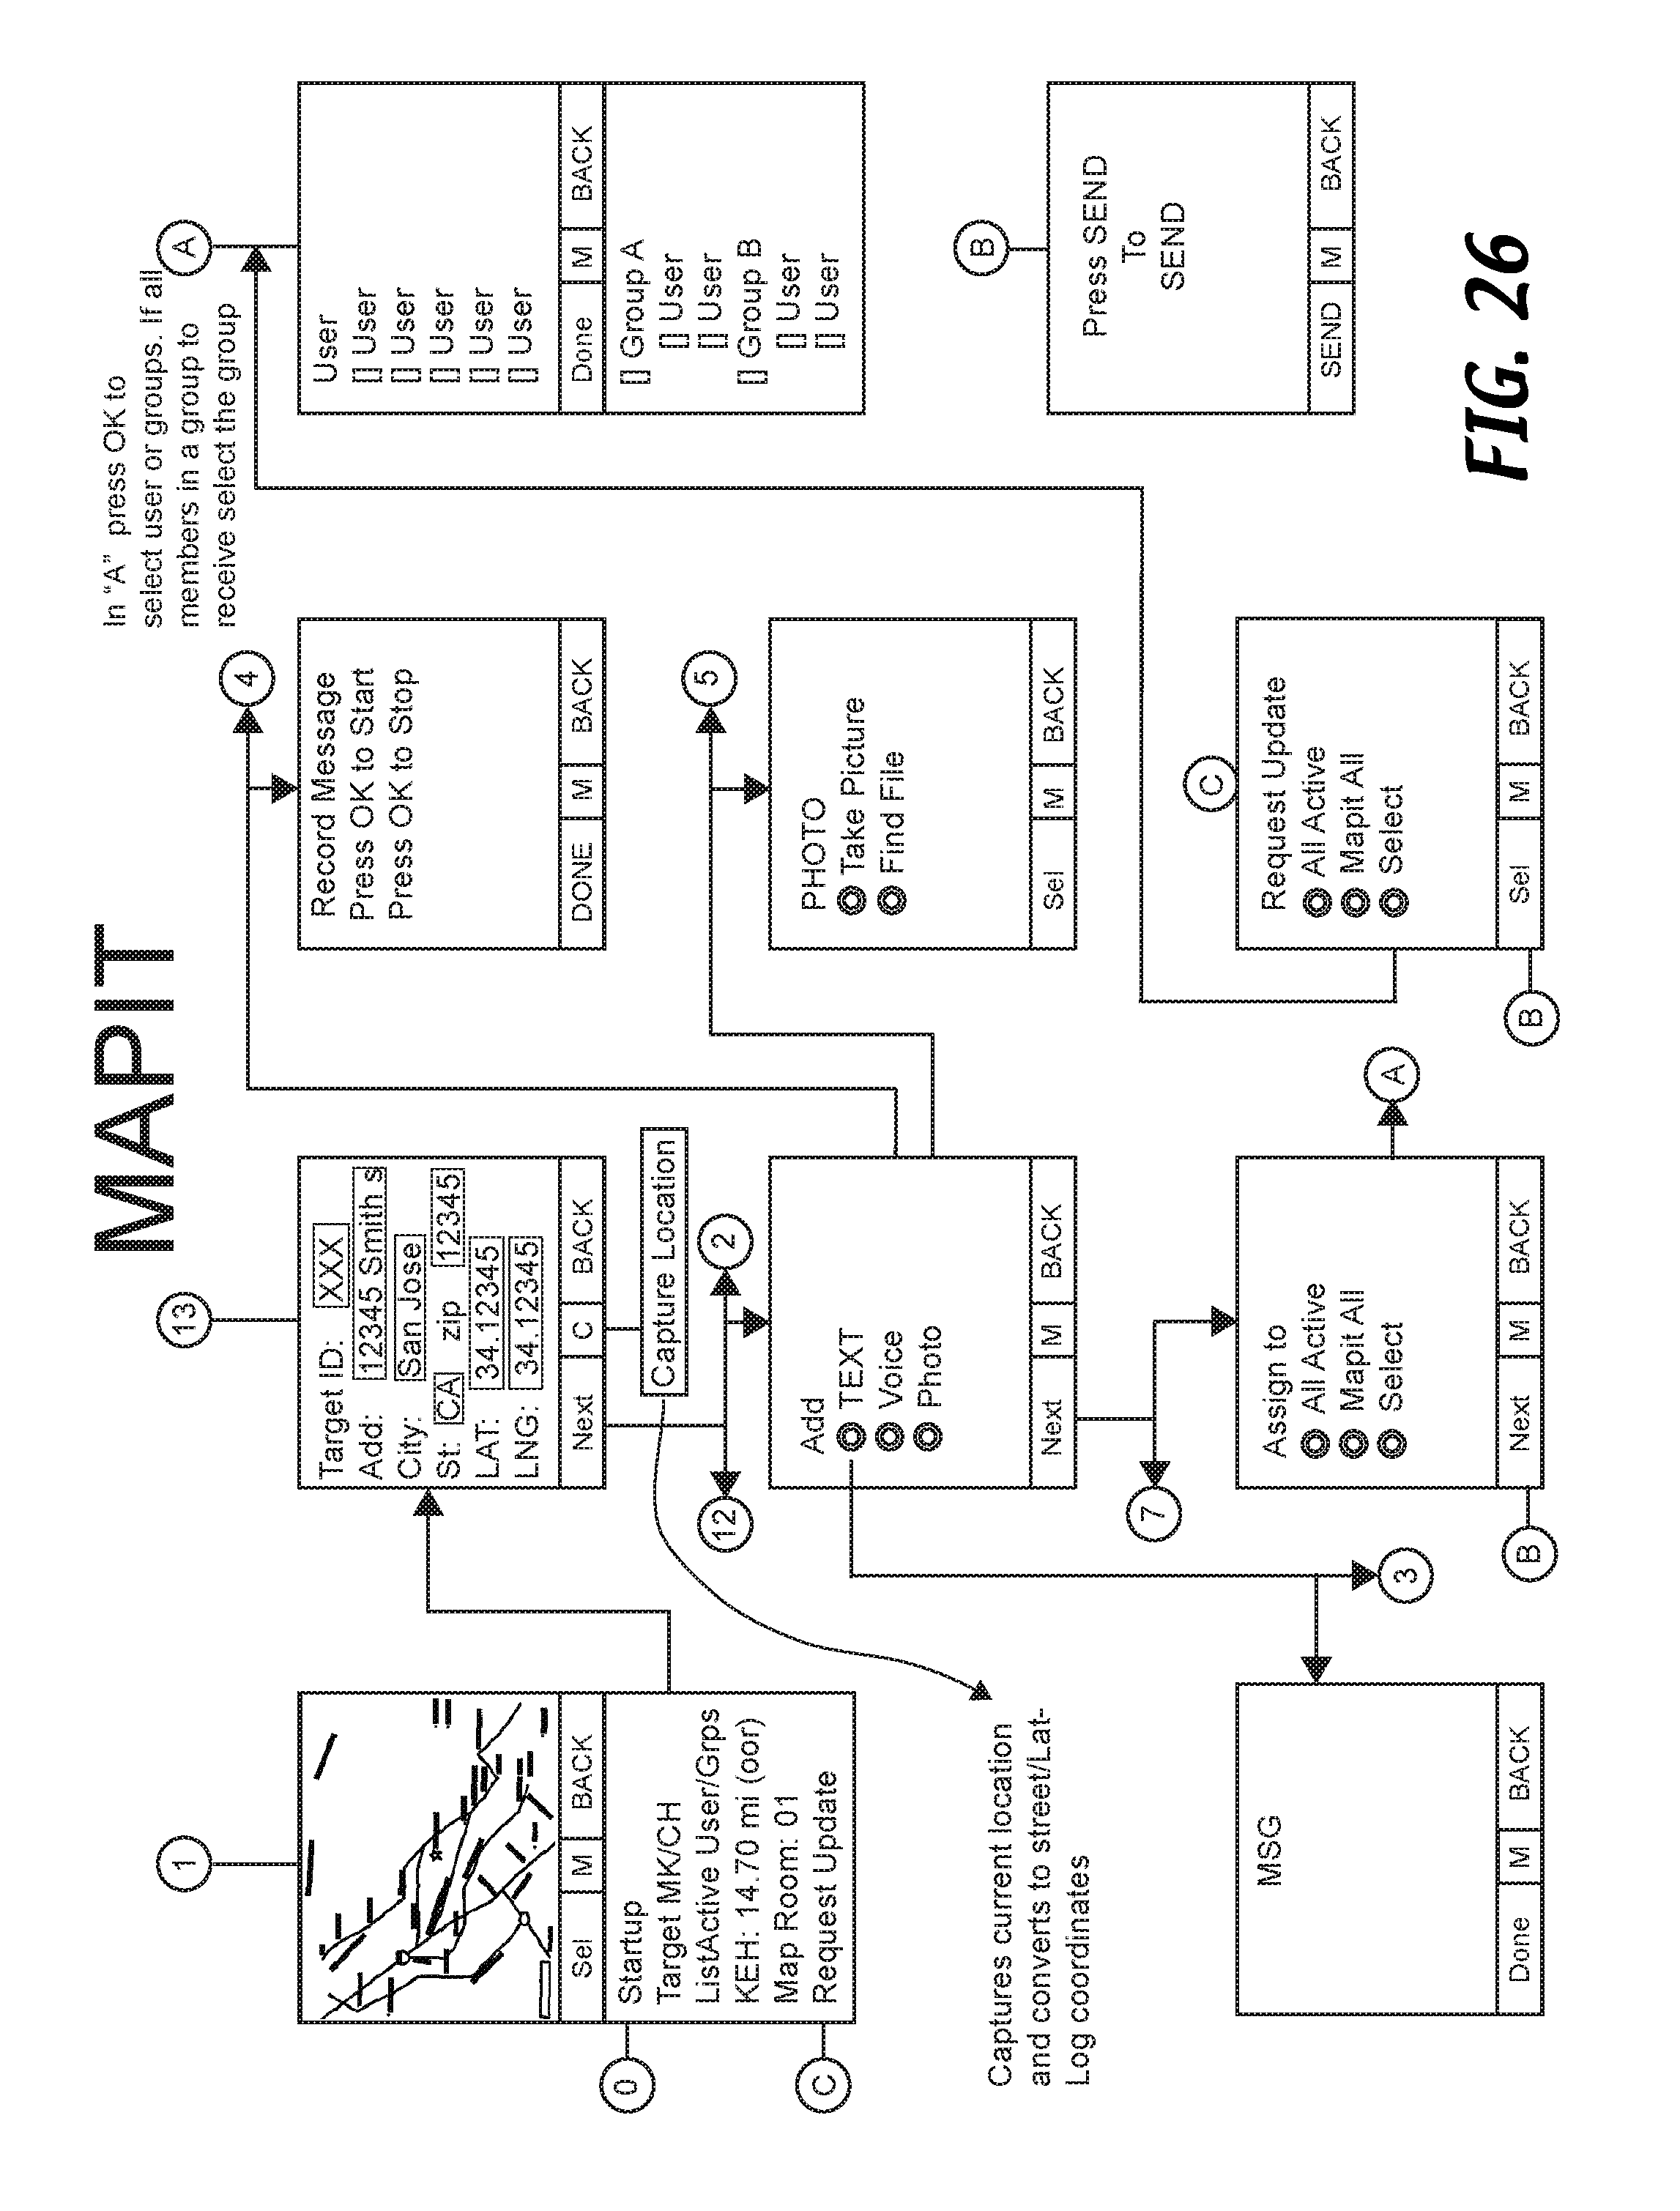 Patent Us 9967704 B1 Color Sensor Circuit Diagram Group Picture Image By Tag Images